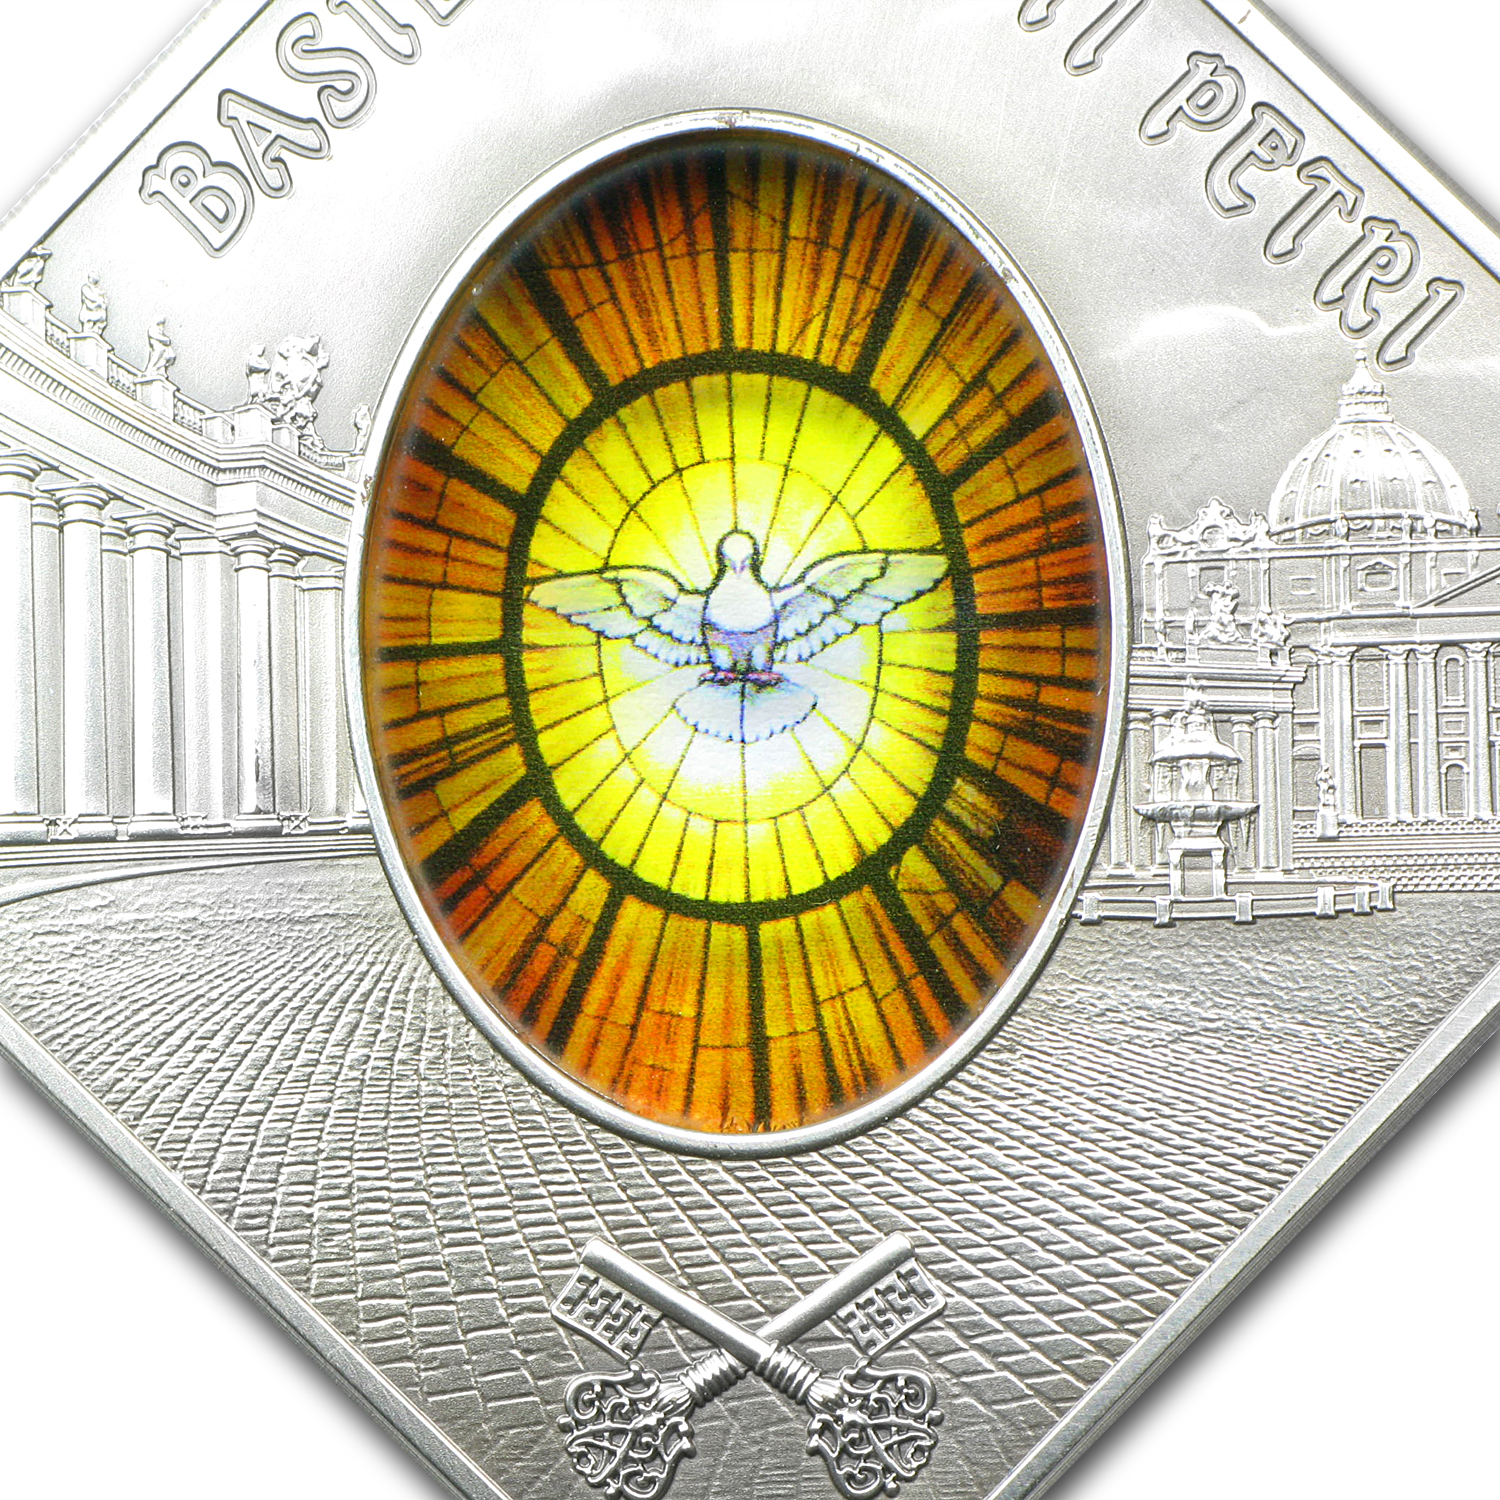 2011 Palau Proof Silver $10 Holy Windows St Peters Basilica